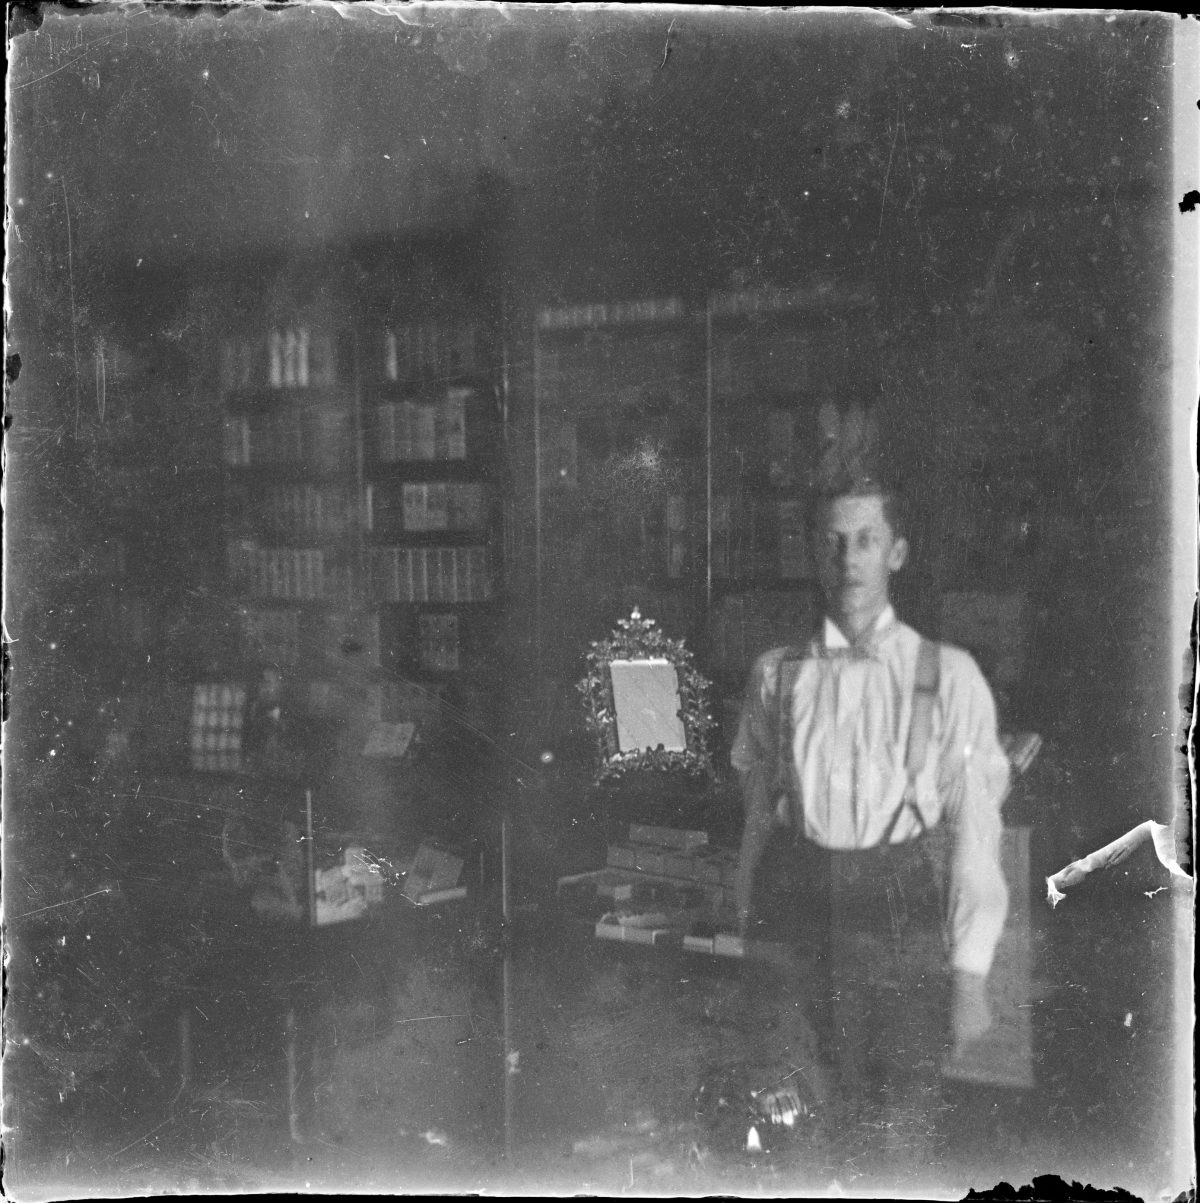 Self portrait attributed to George Silas DuntleyGeorge Silas Duntley Photographs 1899-1918